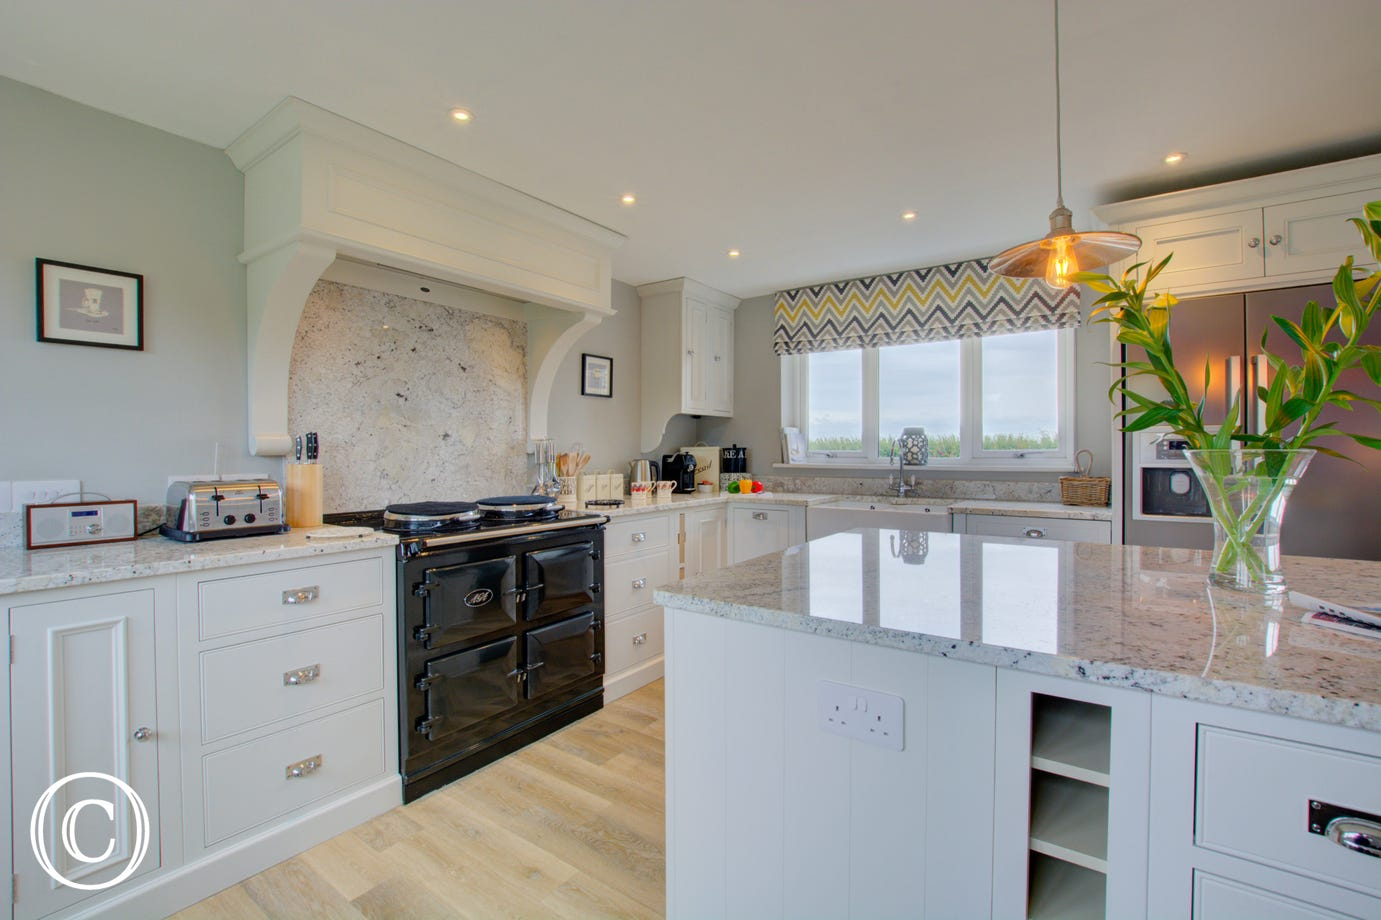 The kitchen has everything needed for your self catering break